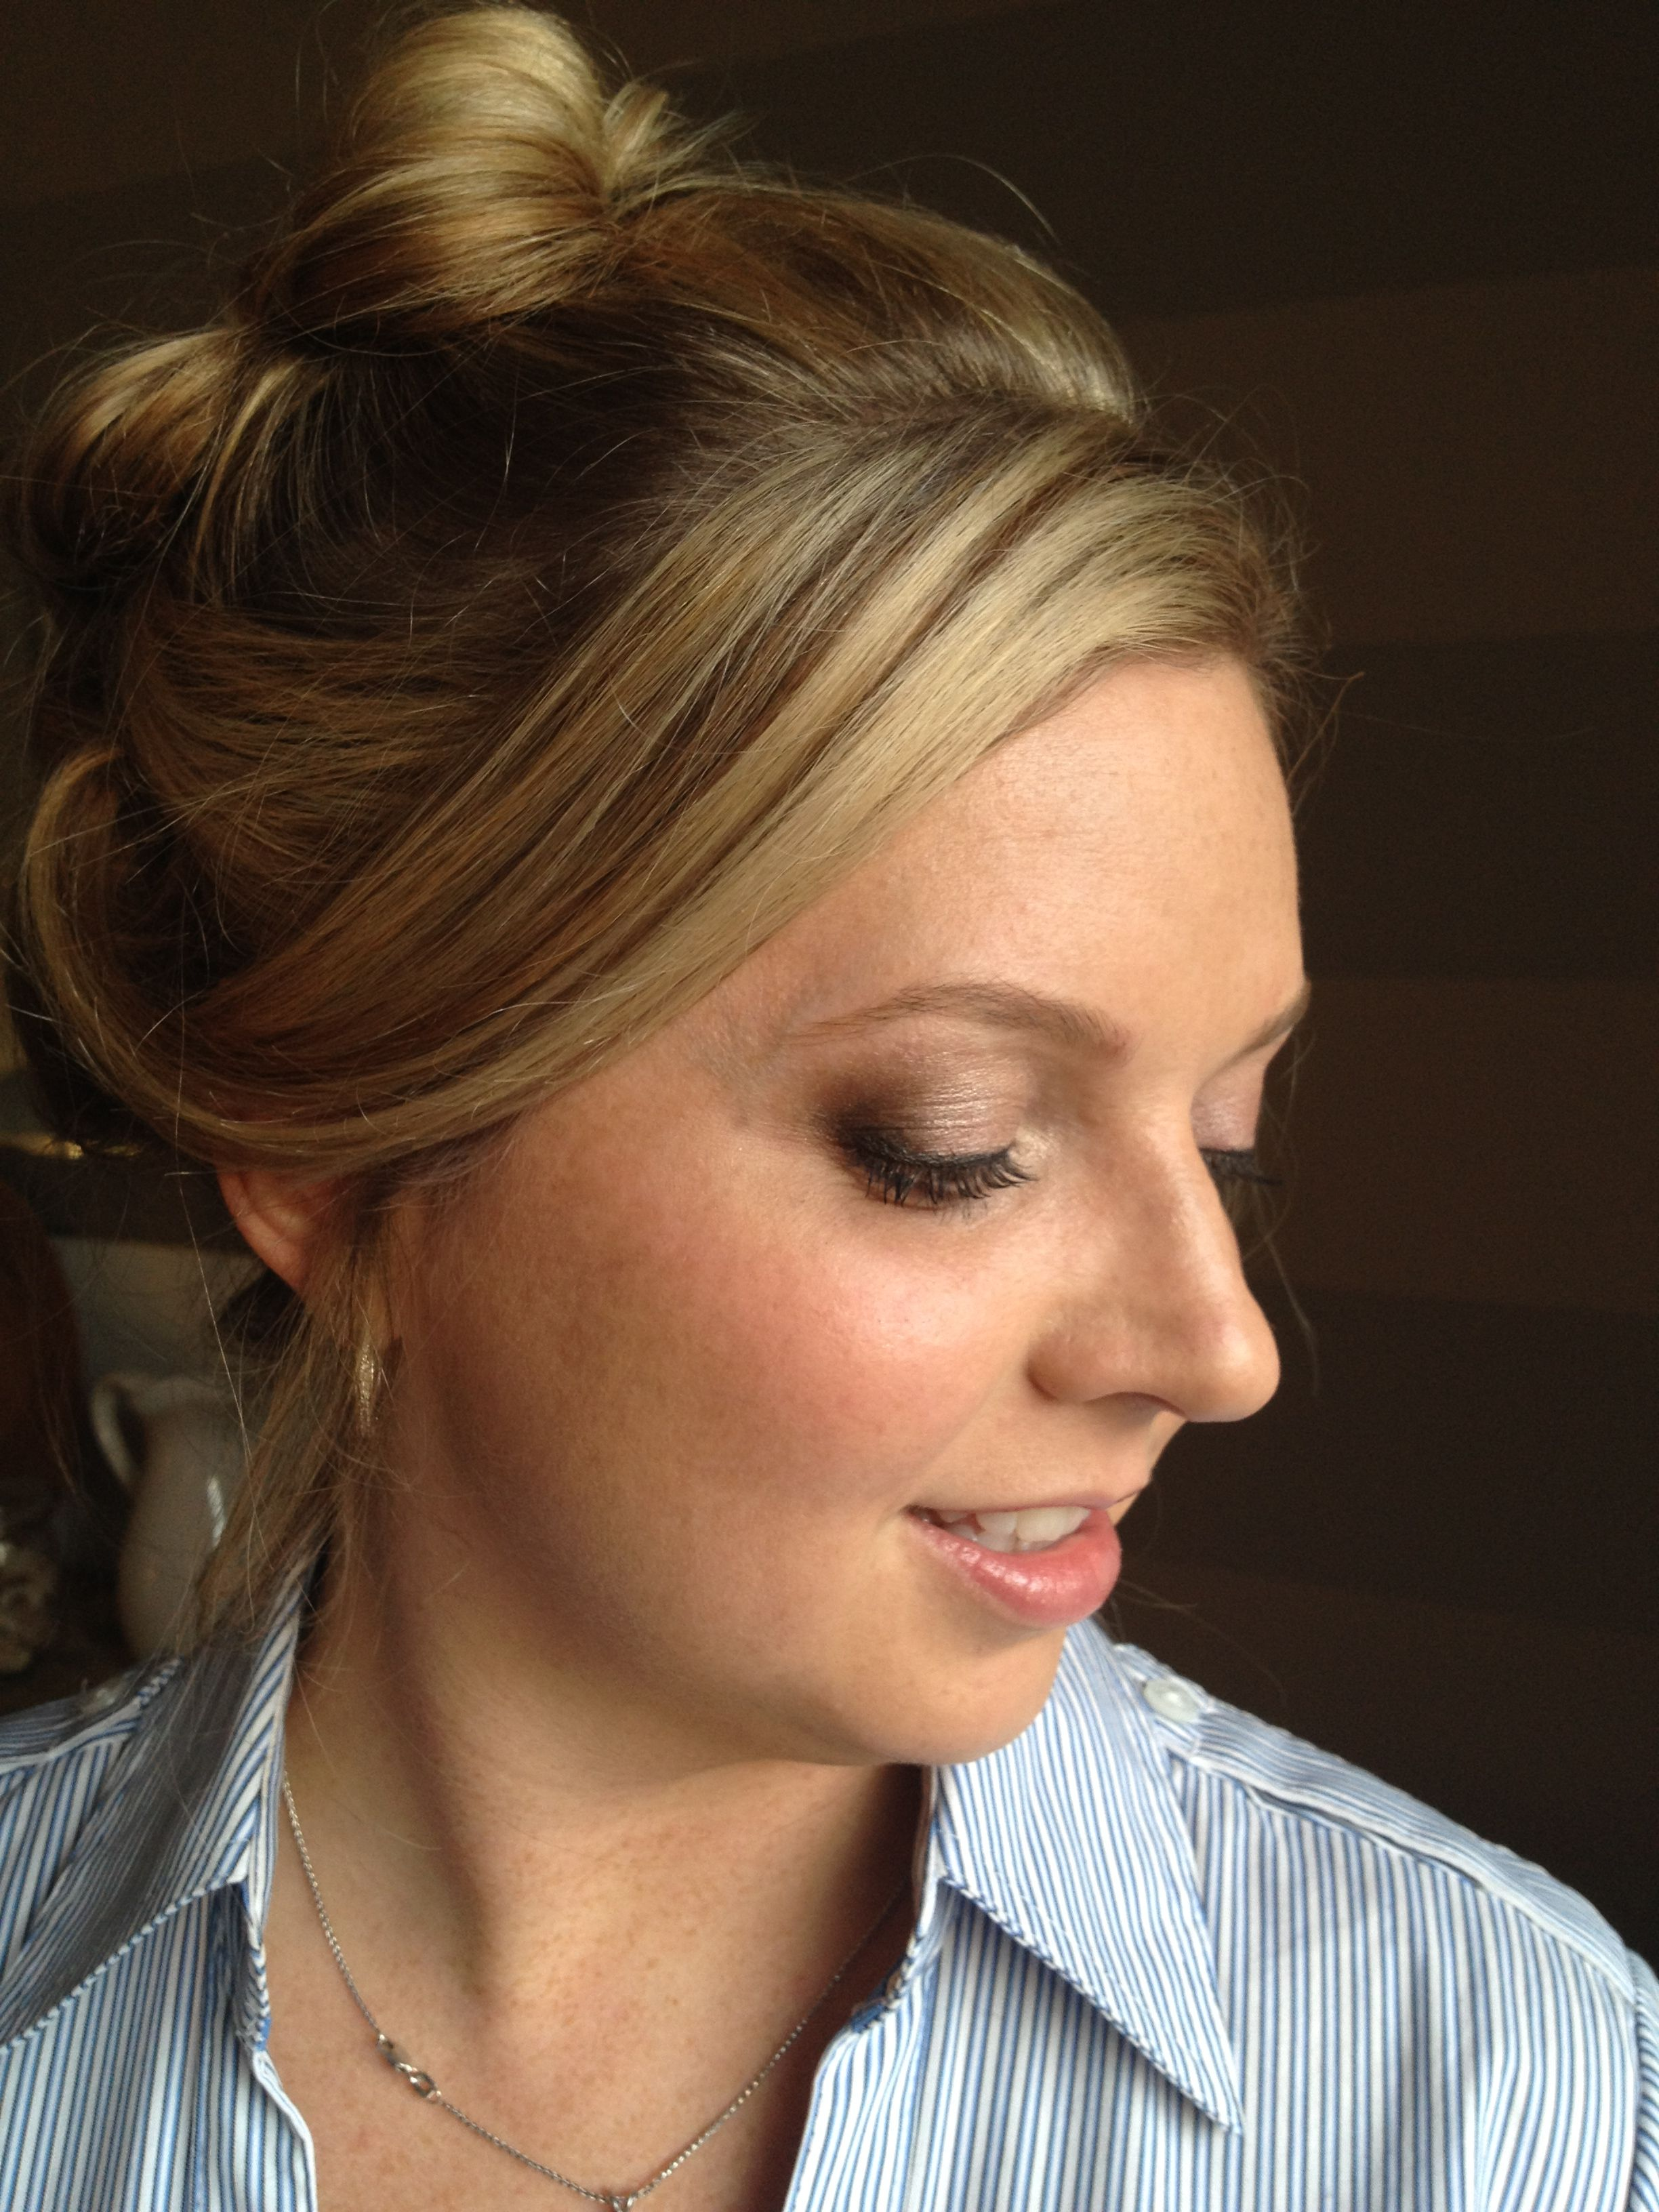 Trial Makeup Will Do False Lashes For The Wedding Day Dental